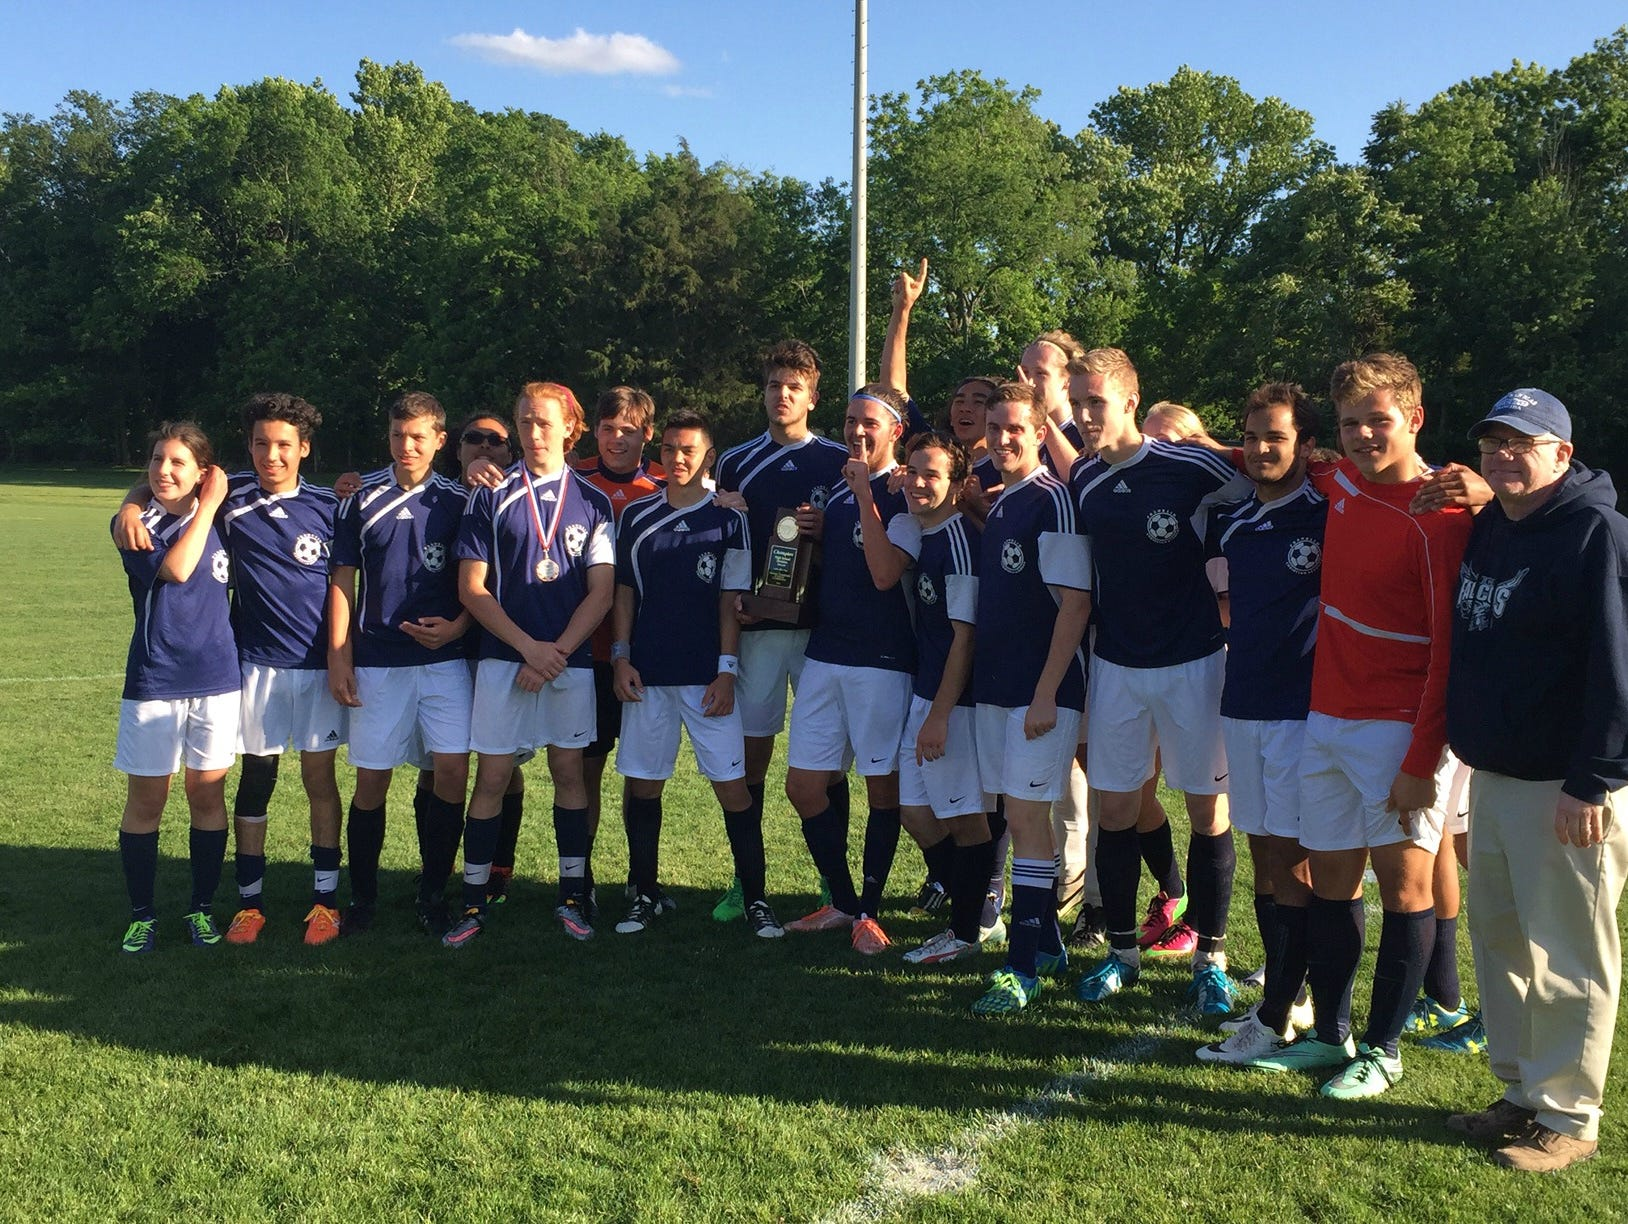 The Franklin Christian Academy soccer team won its first MTAC championship recently.